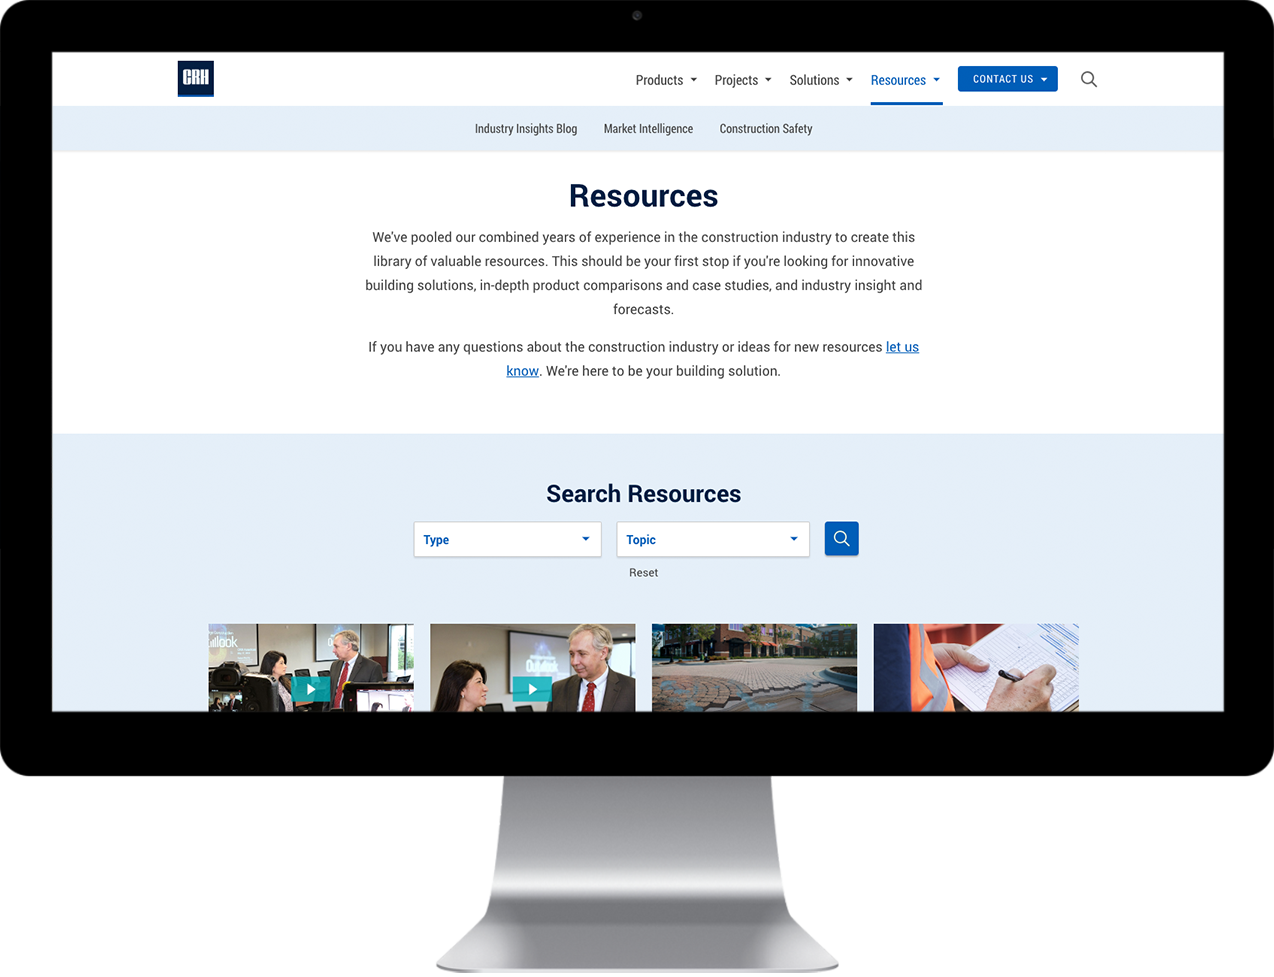 CRH Building Solutions  custom designed resource center on a desktop monitor